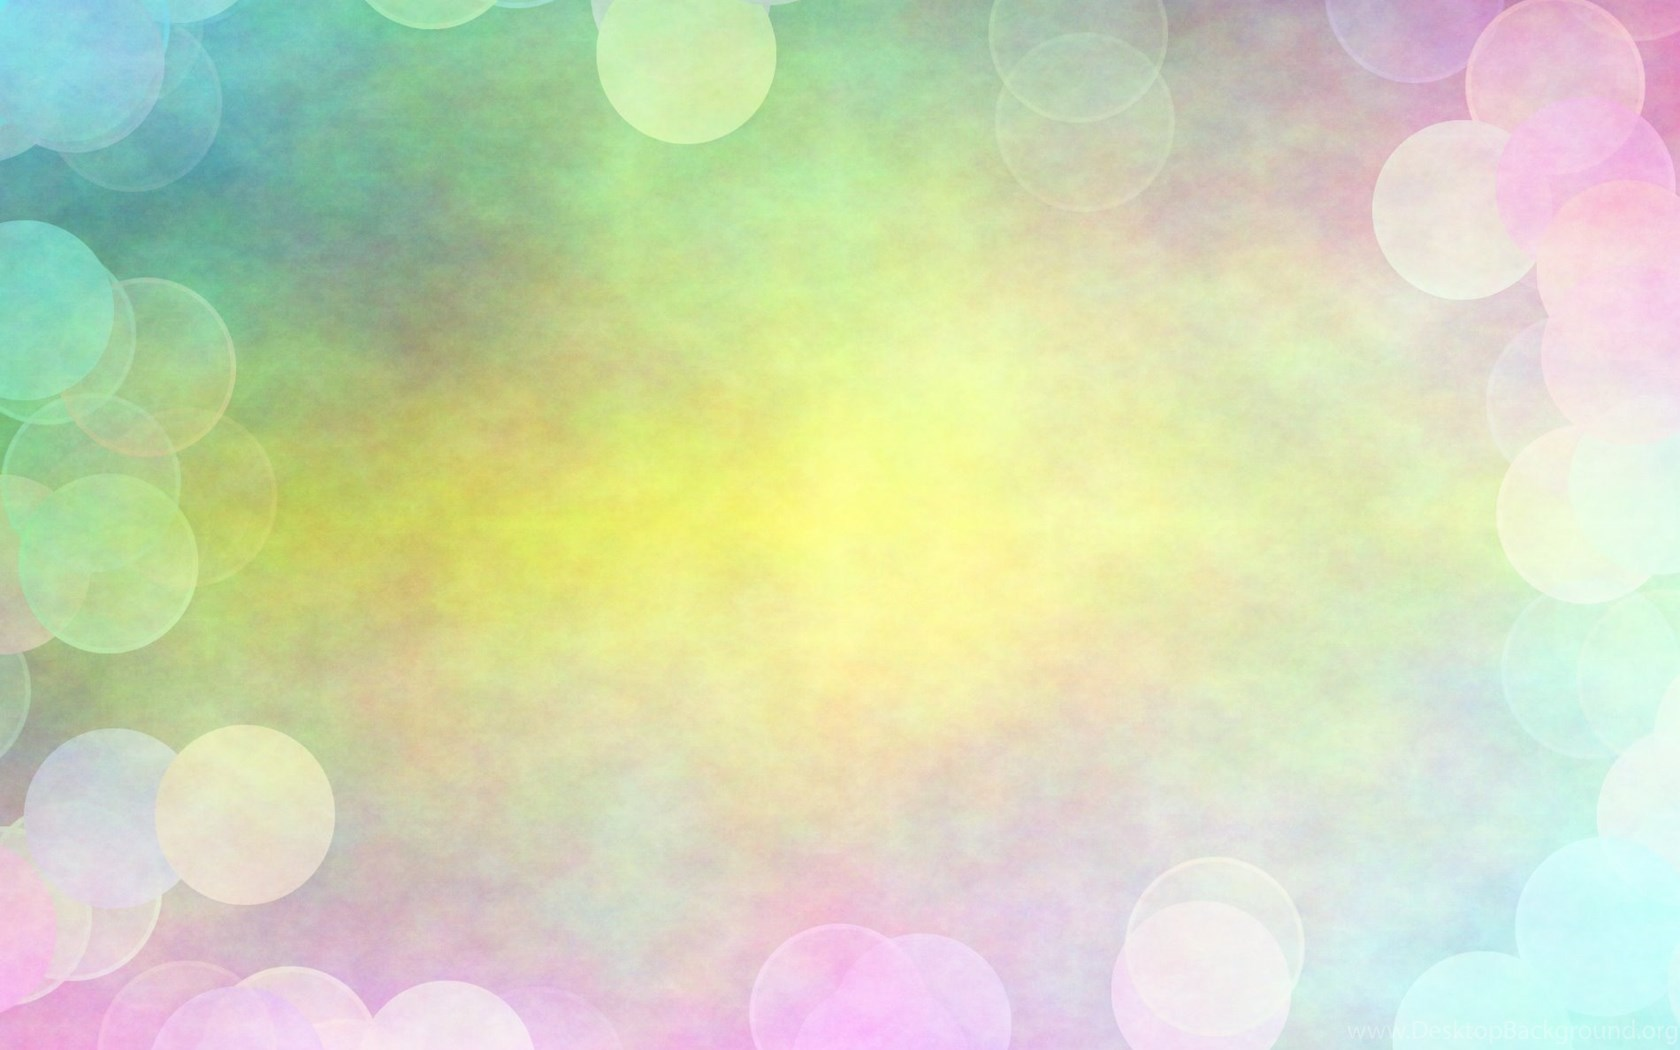 pastel rainbow wallpapers hd resolution for desktop